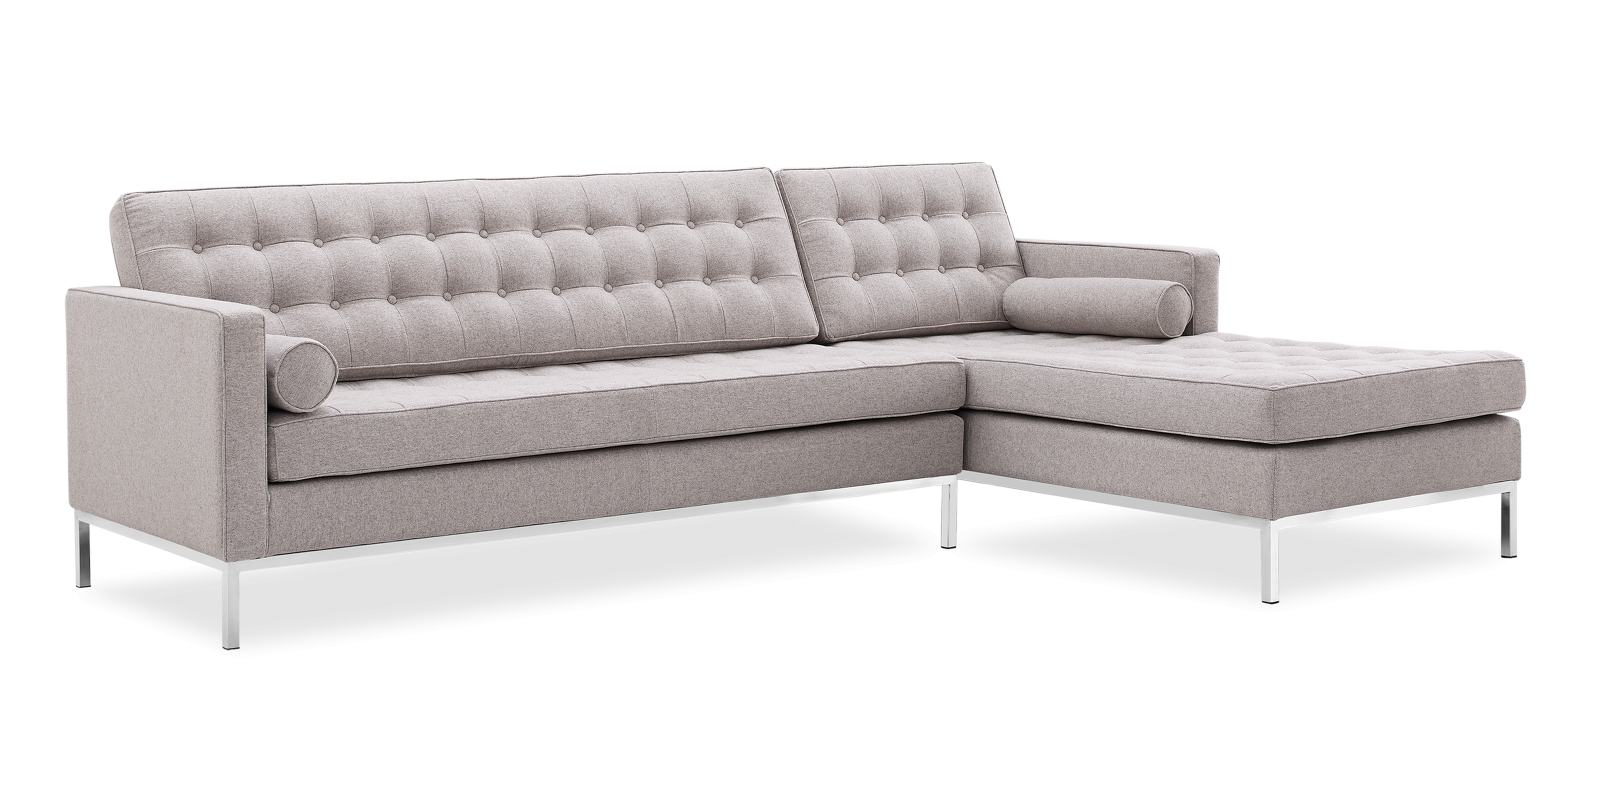 15 Florence Knoll Style Sofas